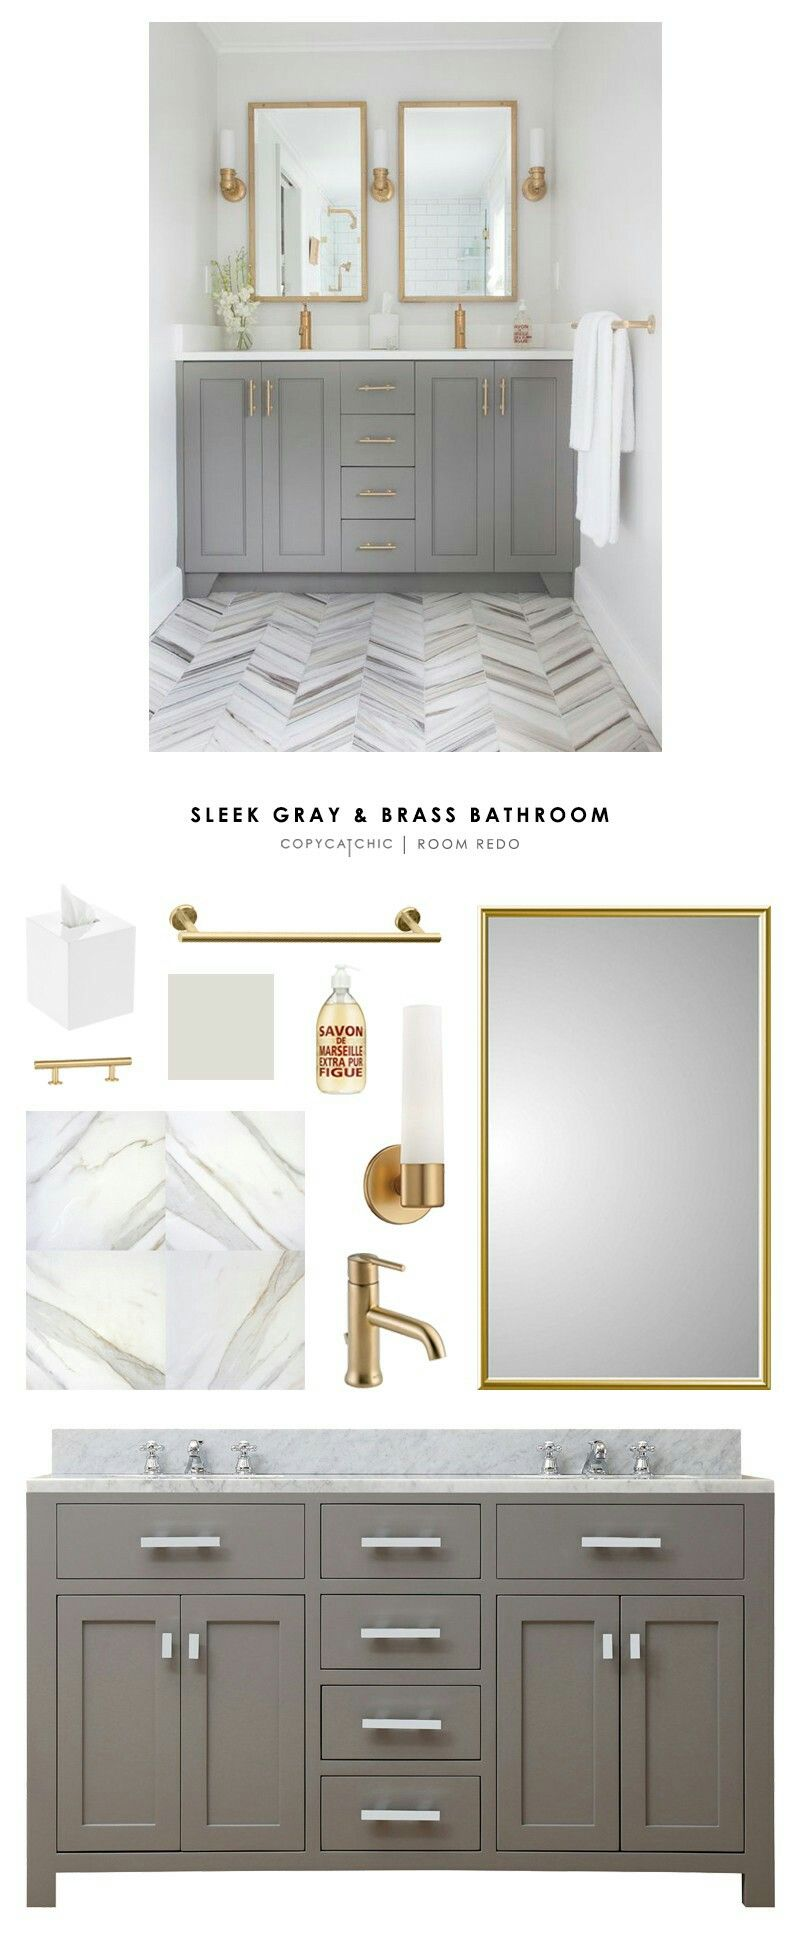 Best Eider White Sherwin Williams Colors For Master Bath 400 x 300